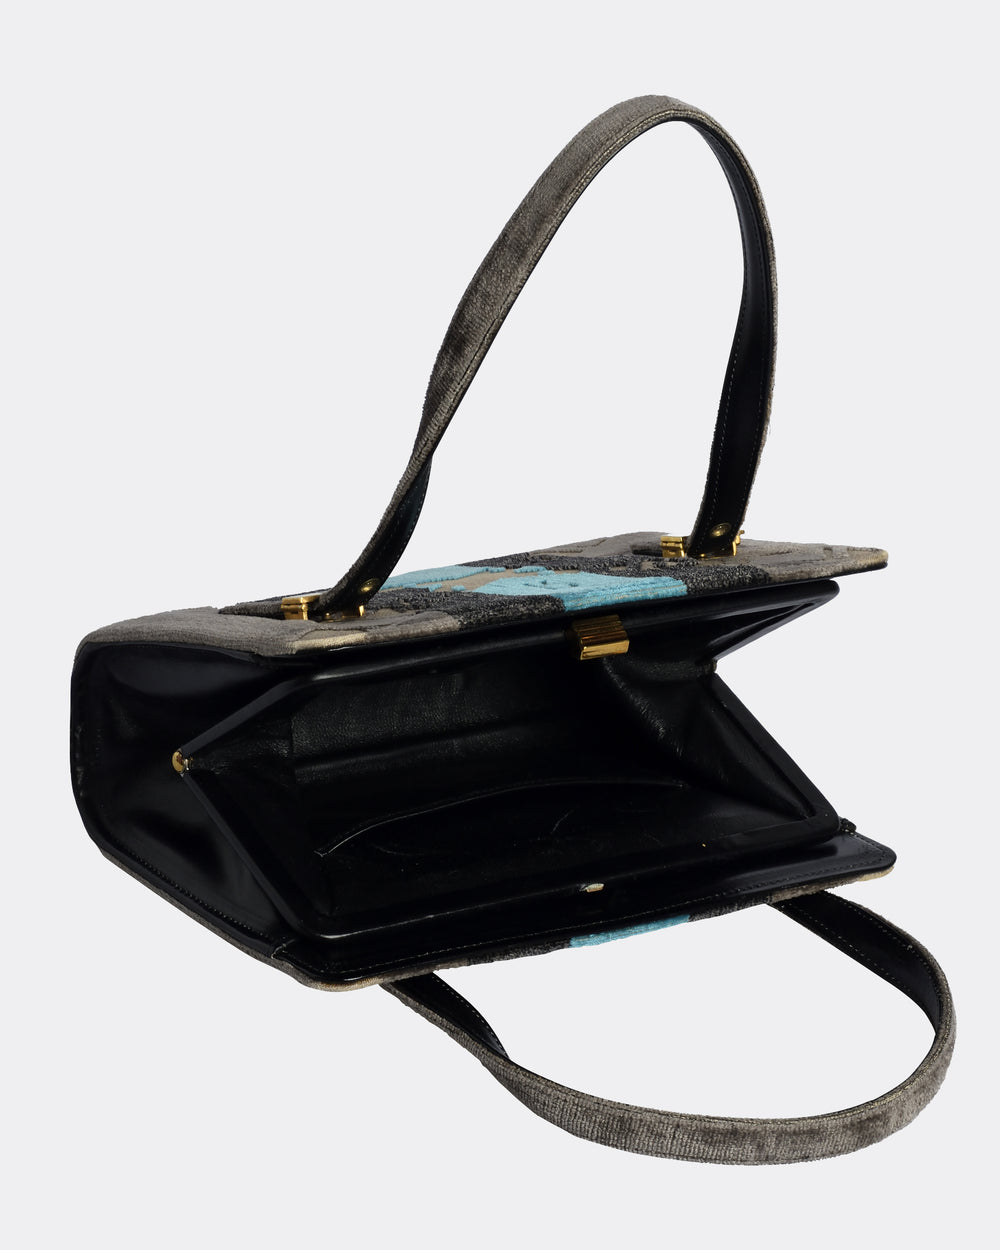 ROBERTA di CAMERINO Grey and Blue Handbag